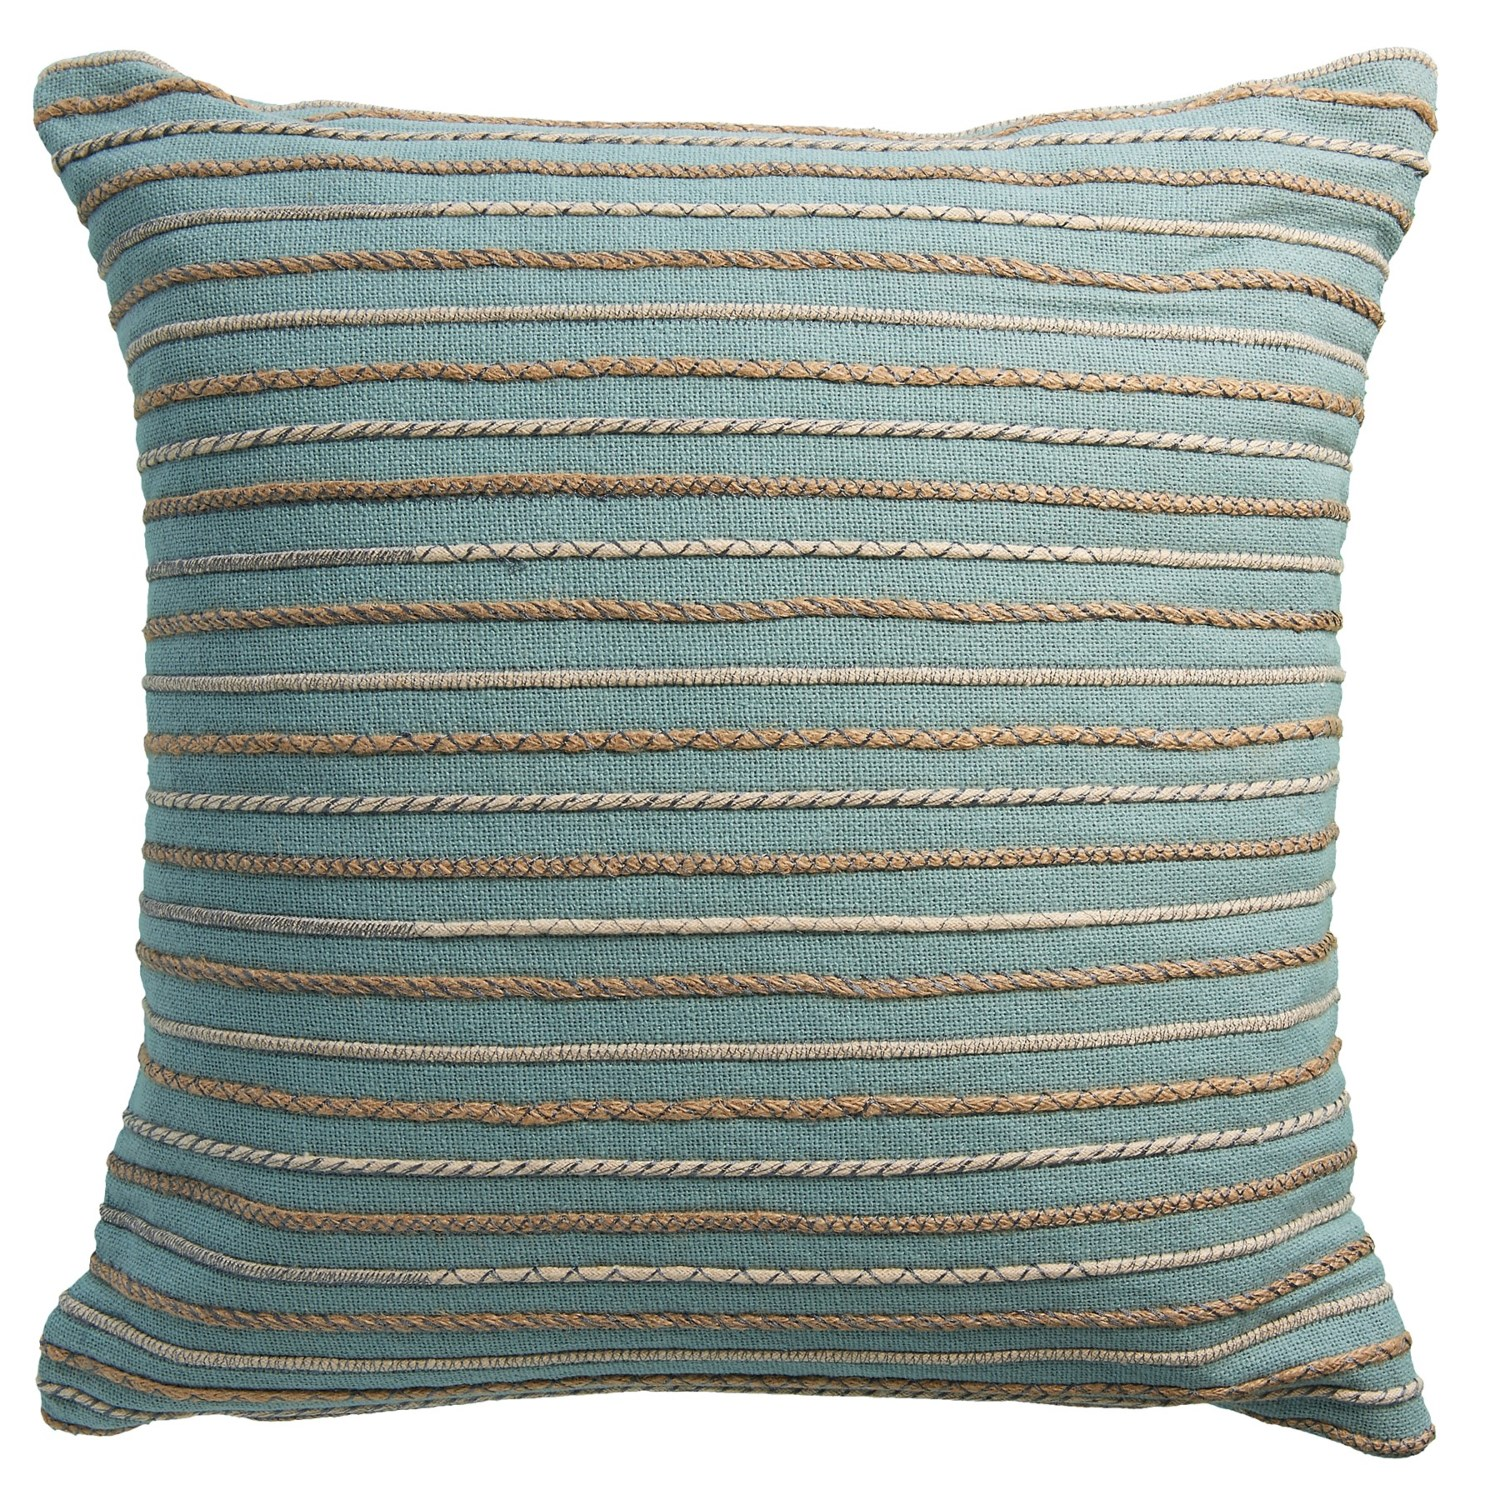 "Rizzy Home Rope Stripe Decor Pillow - 20x20"" - Save 20%"